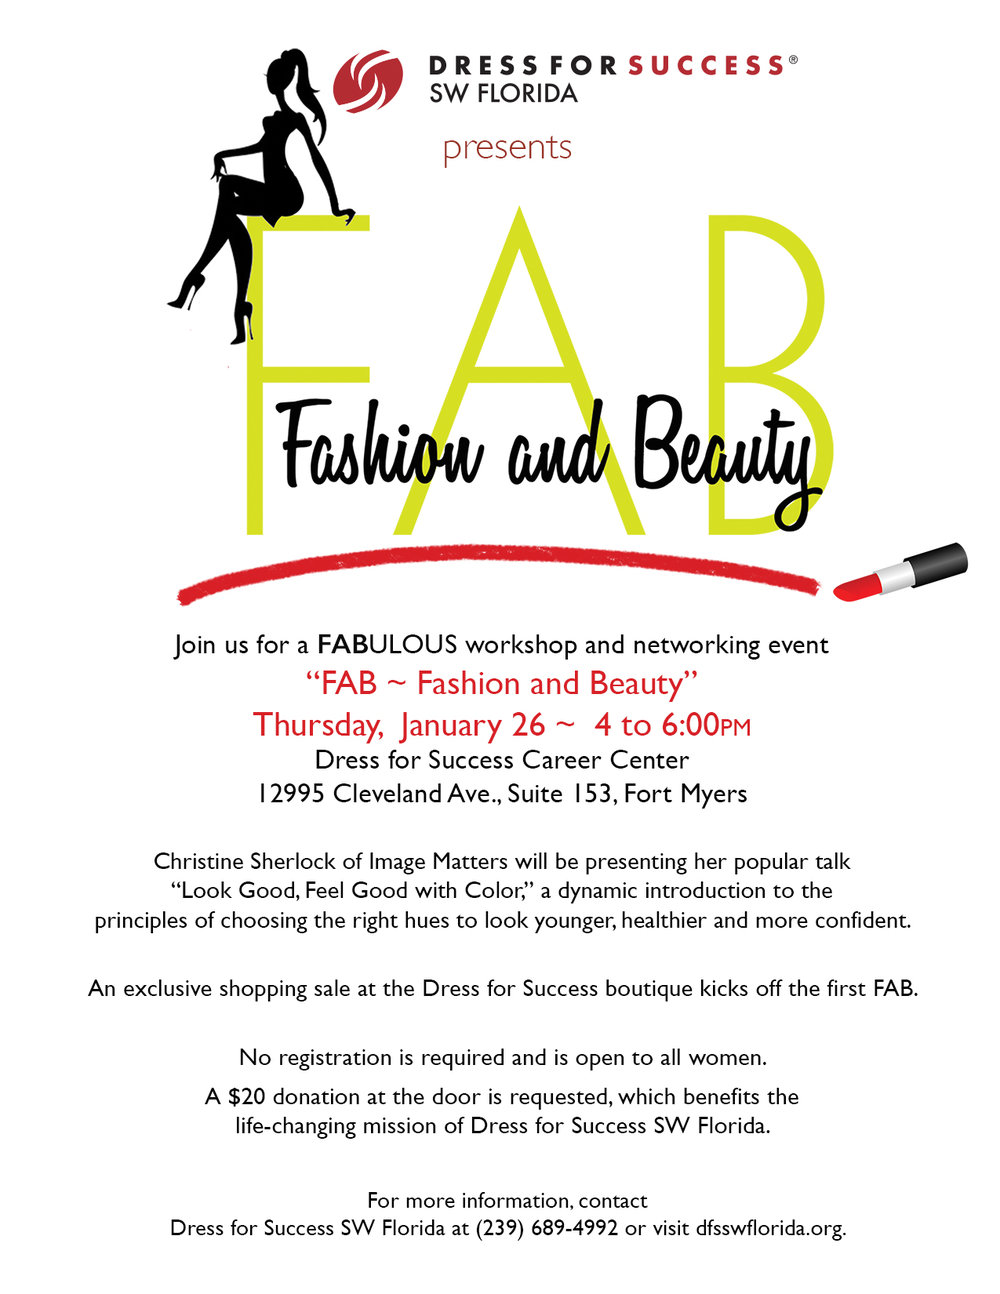 "Join us for a FABulous workshop and networking event ""FAB ~ Fashion and Beauty"" Thursday,  January 26 ~  4 to 6:00pm Dress for Success Career Center 12995 Cleveland Ave., Suite 153, Fort Myers Christine Sherlock of Image Matters will be presenting her popular talk ""Look Good, Feel Good with Color,"" a dynamic introduction to the principles of choosing the right hues to look younger, healthier and more confident. An exclusive shopping sale at the Dress for Success boutique kicks off the first FAB. No registration is required and is open to all women. A $20 donation at the door is requested, which benefits the life-changing mission of Dress for Success SW Florida. For more information, contact Dress for Success SW Florida at (239) 689-4992 or visit dfsswflorida.org."